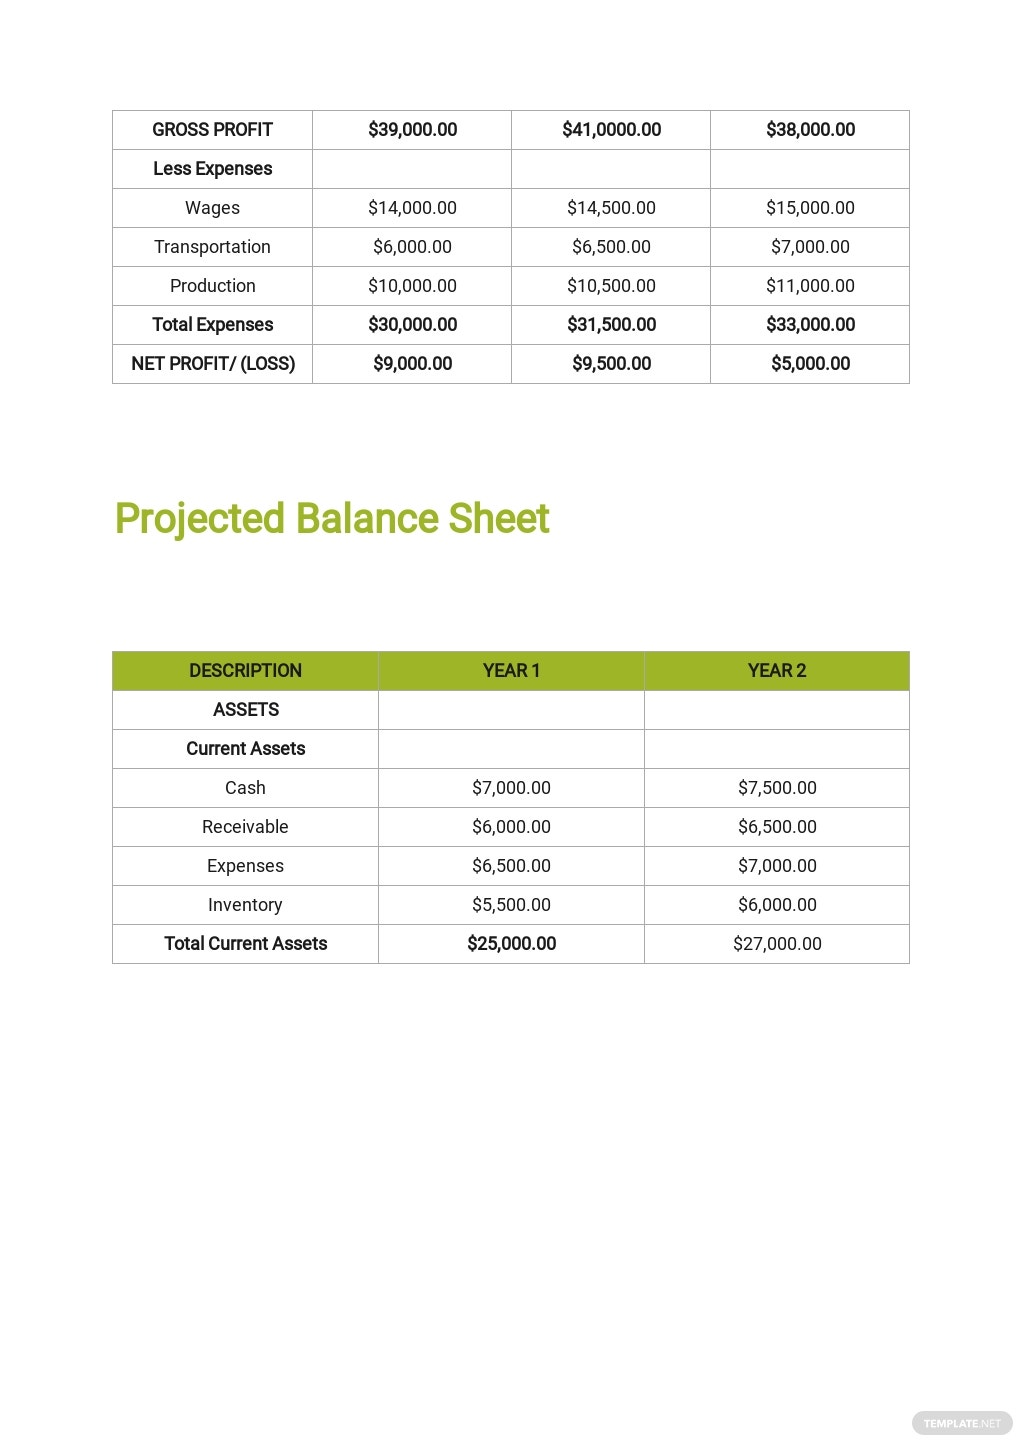 Investment Company Business Plan Template 7.jpe